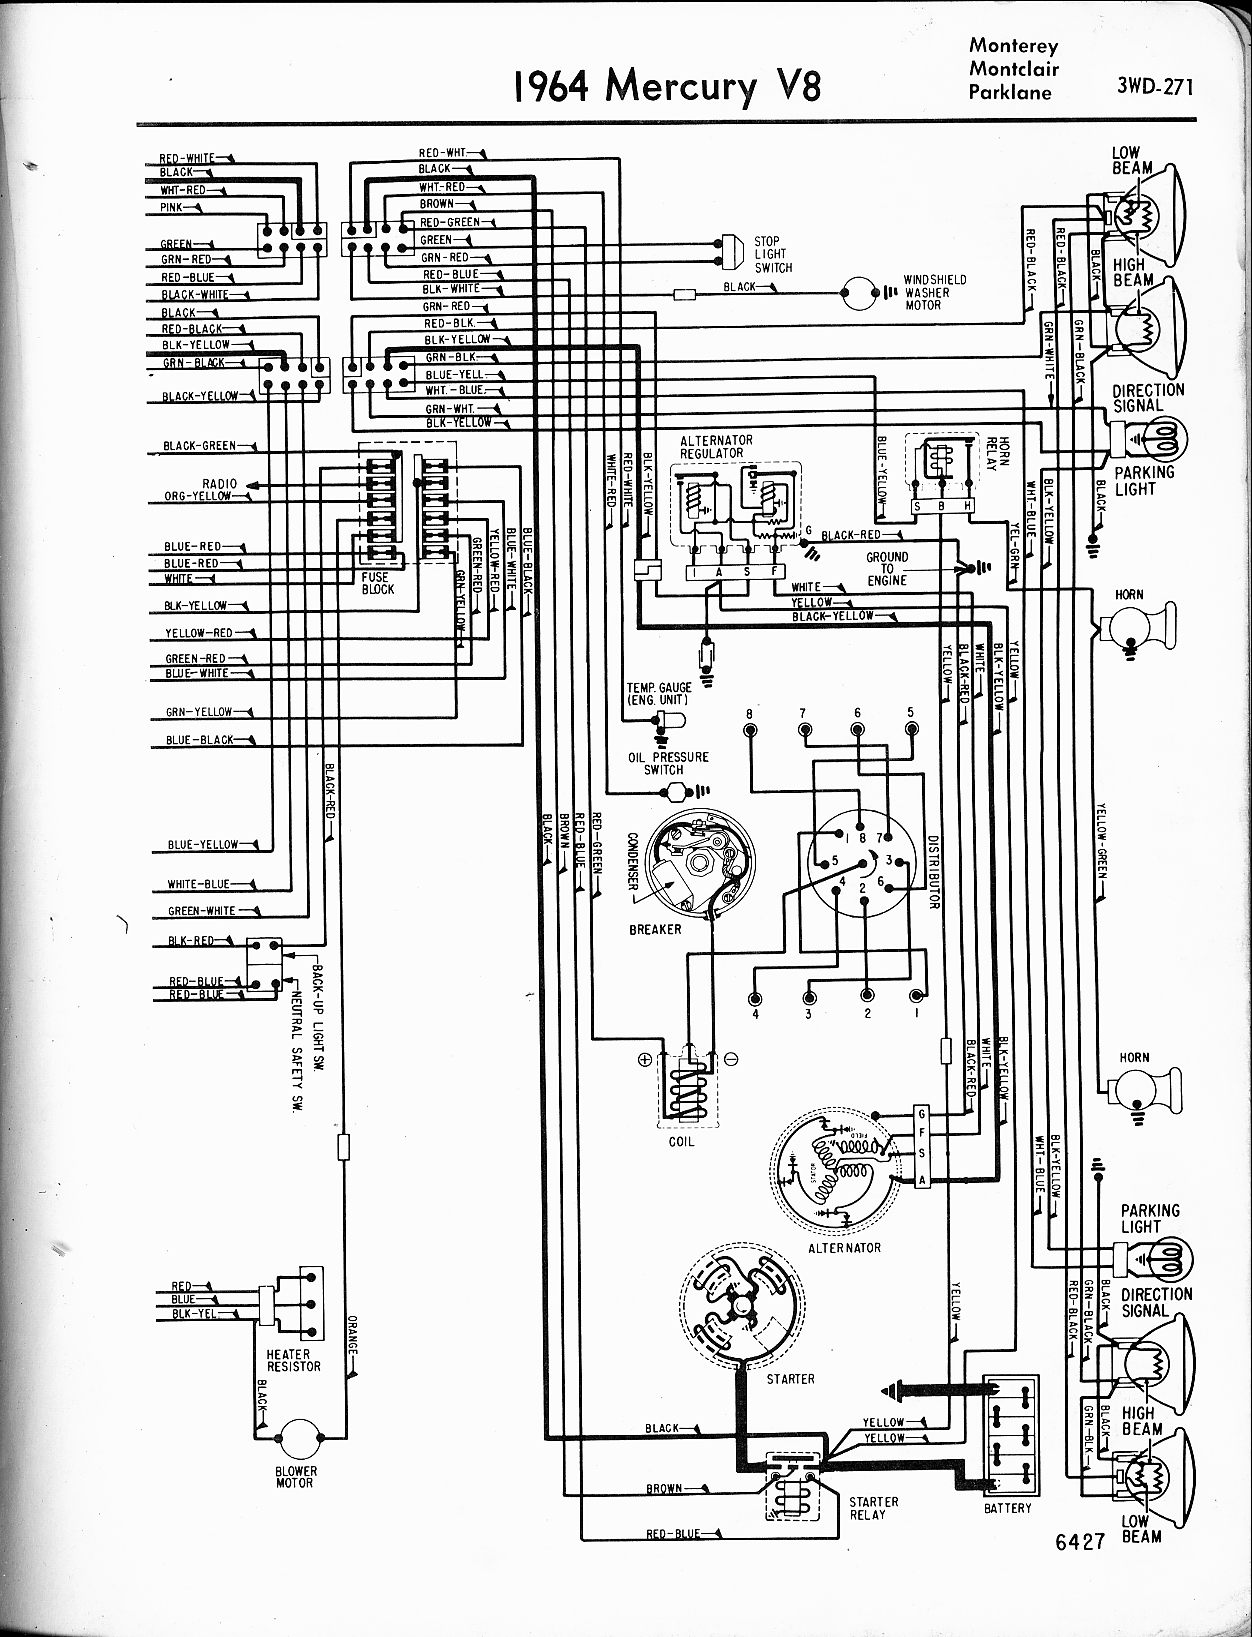 1954 Corvette Wiring Diagram Fuse Box Chevy Mercury Outboard Diagrams Rh Parsplus Co